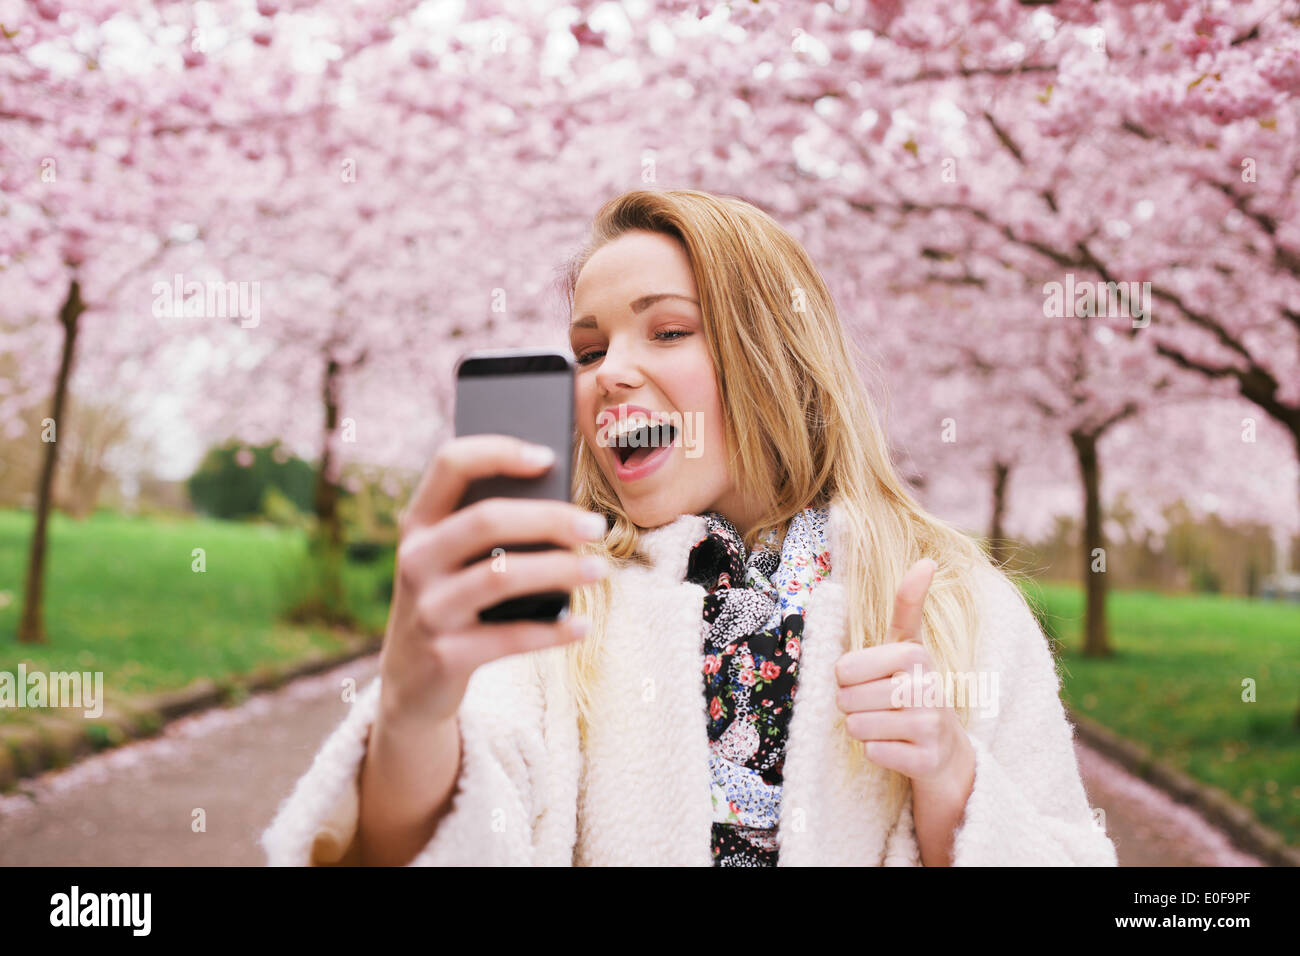 Cheerful young woman talking her picture with her cell phone and gesturing thumbs up sign. Caucasian female model posing. - Stock Image